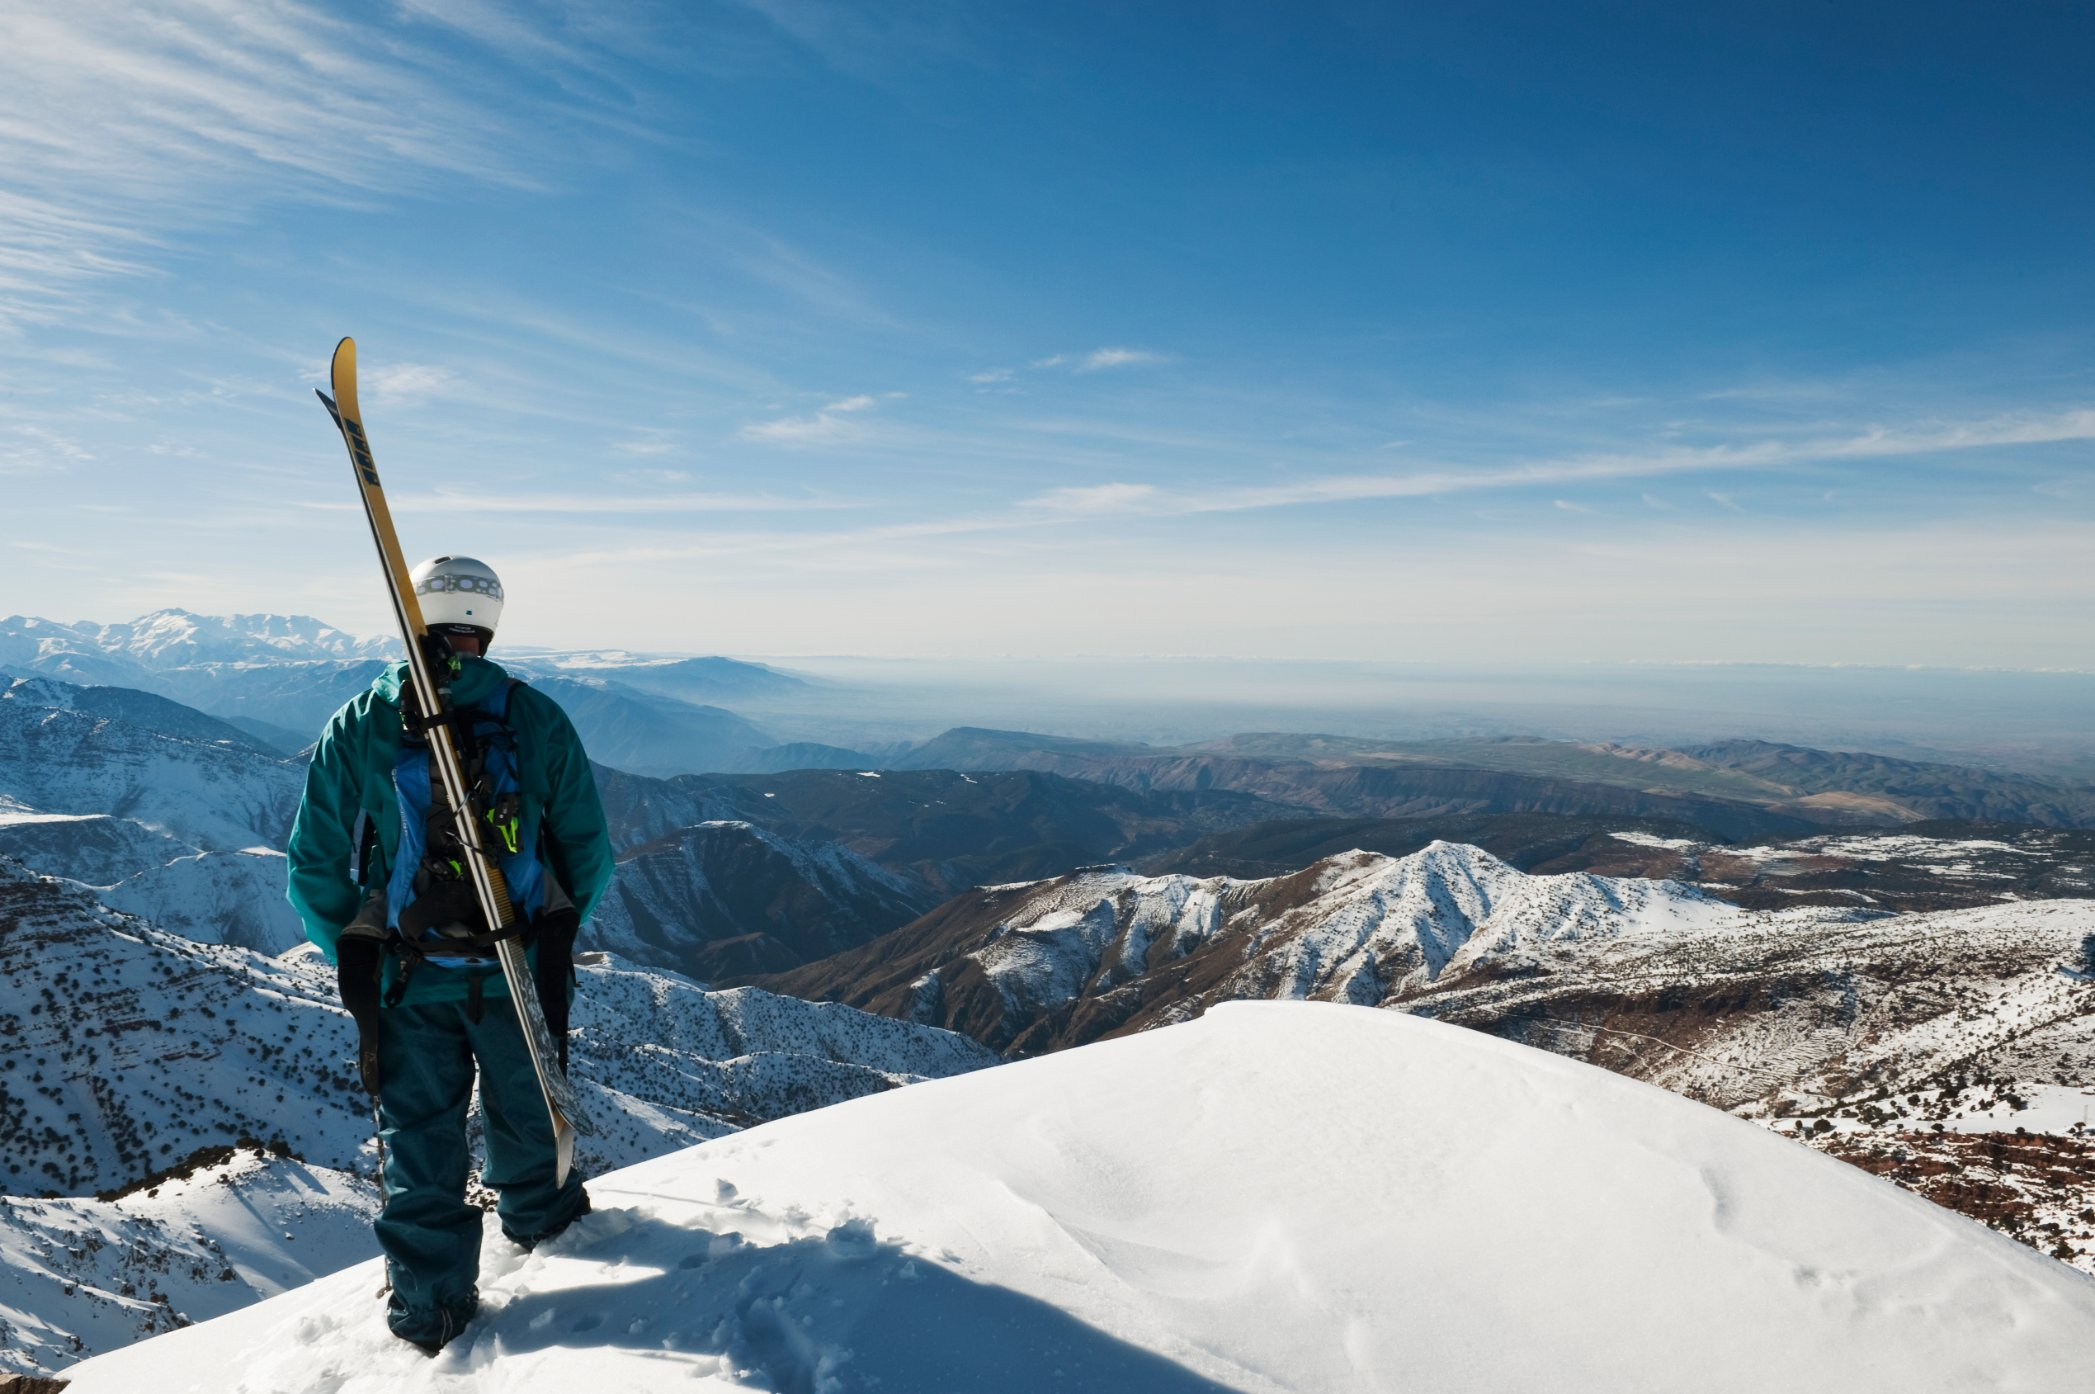 skiing in morocco: north africa's atlas mountains | cnn travel